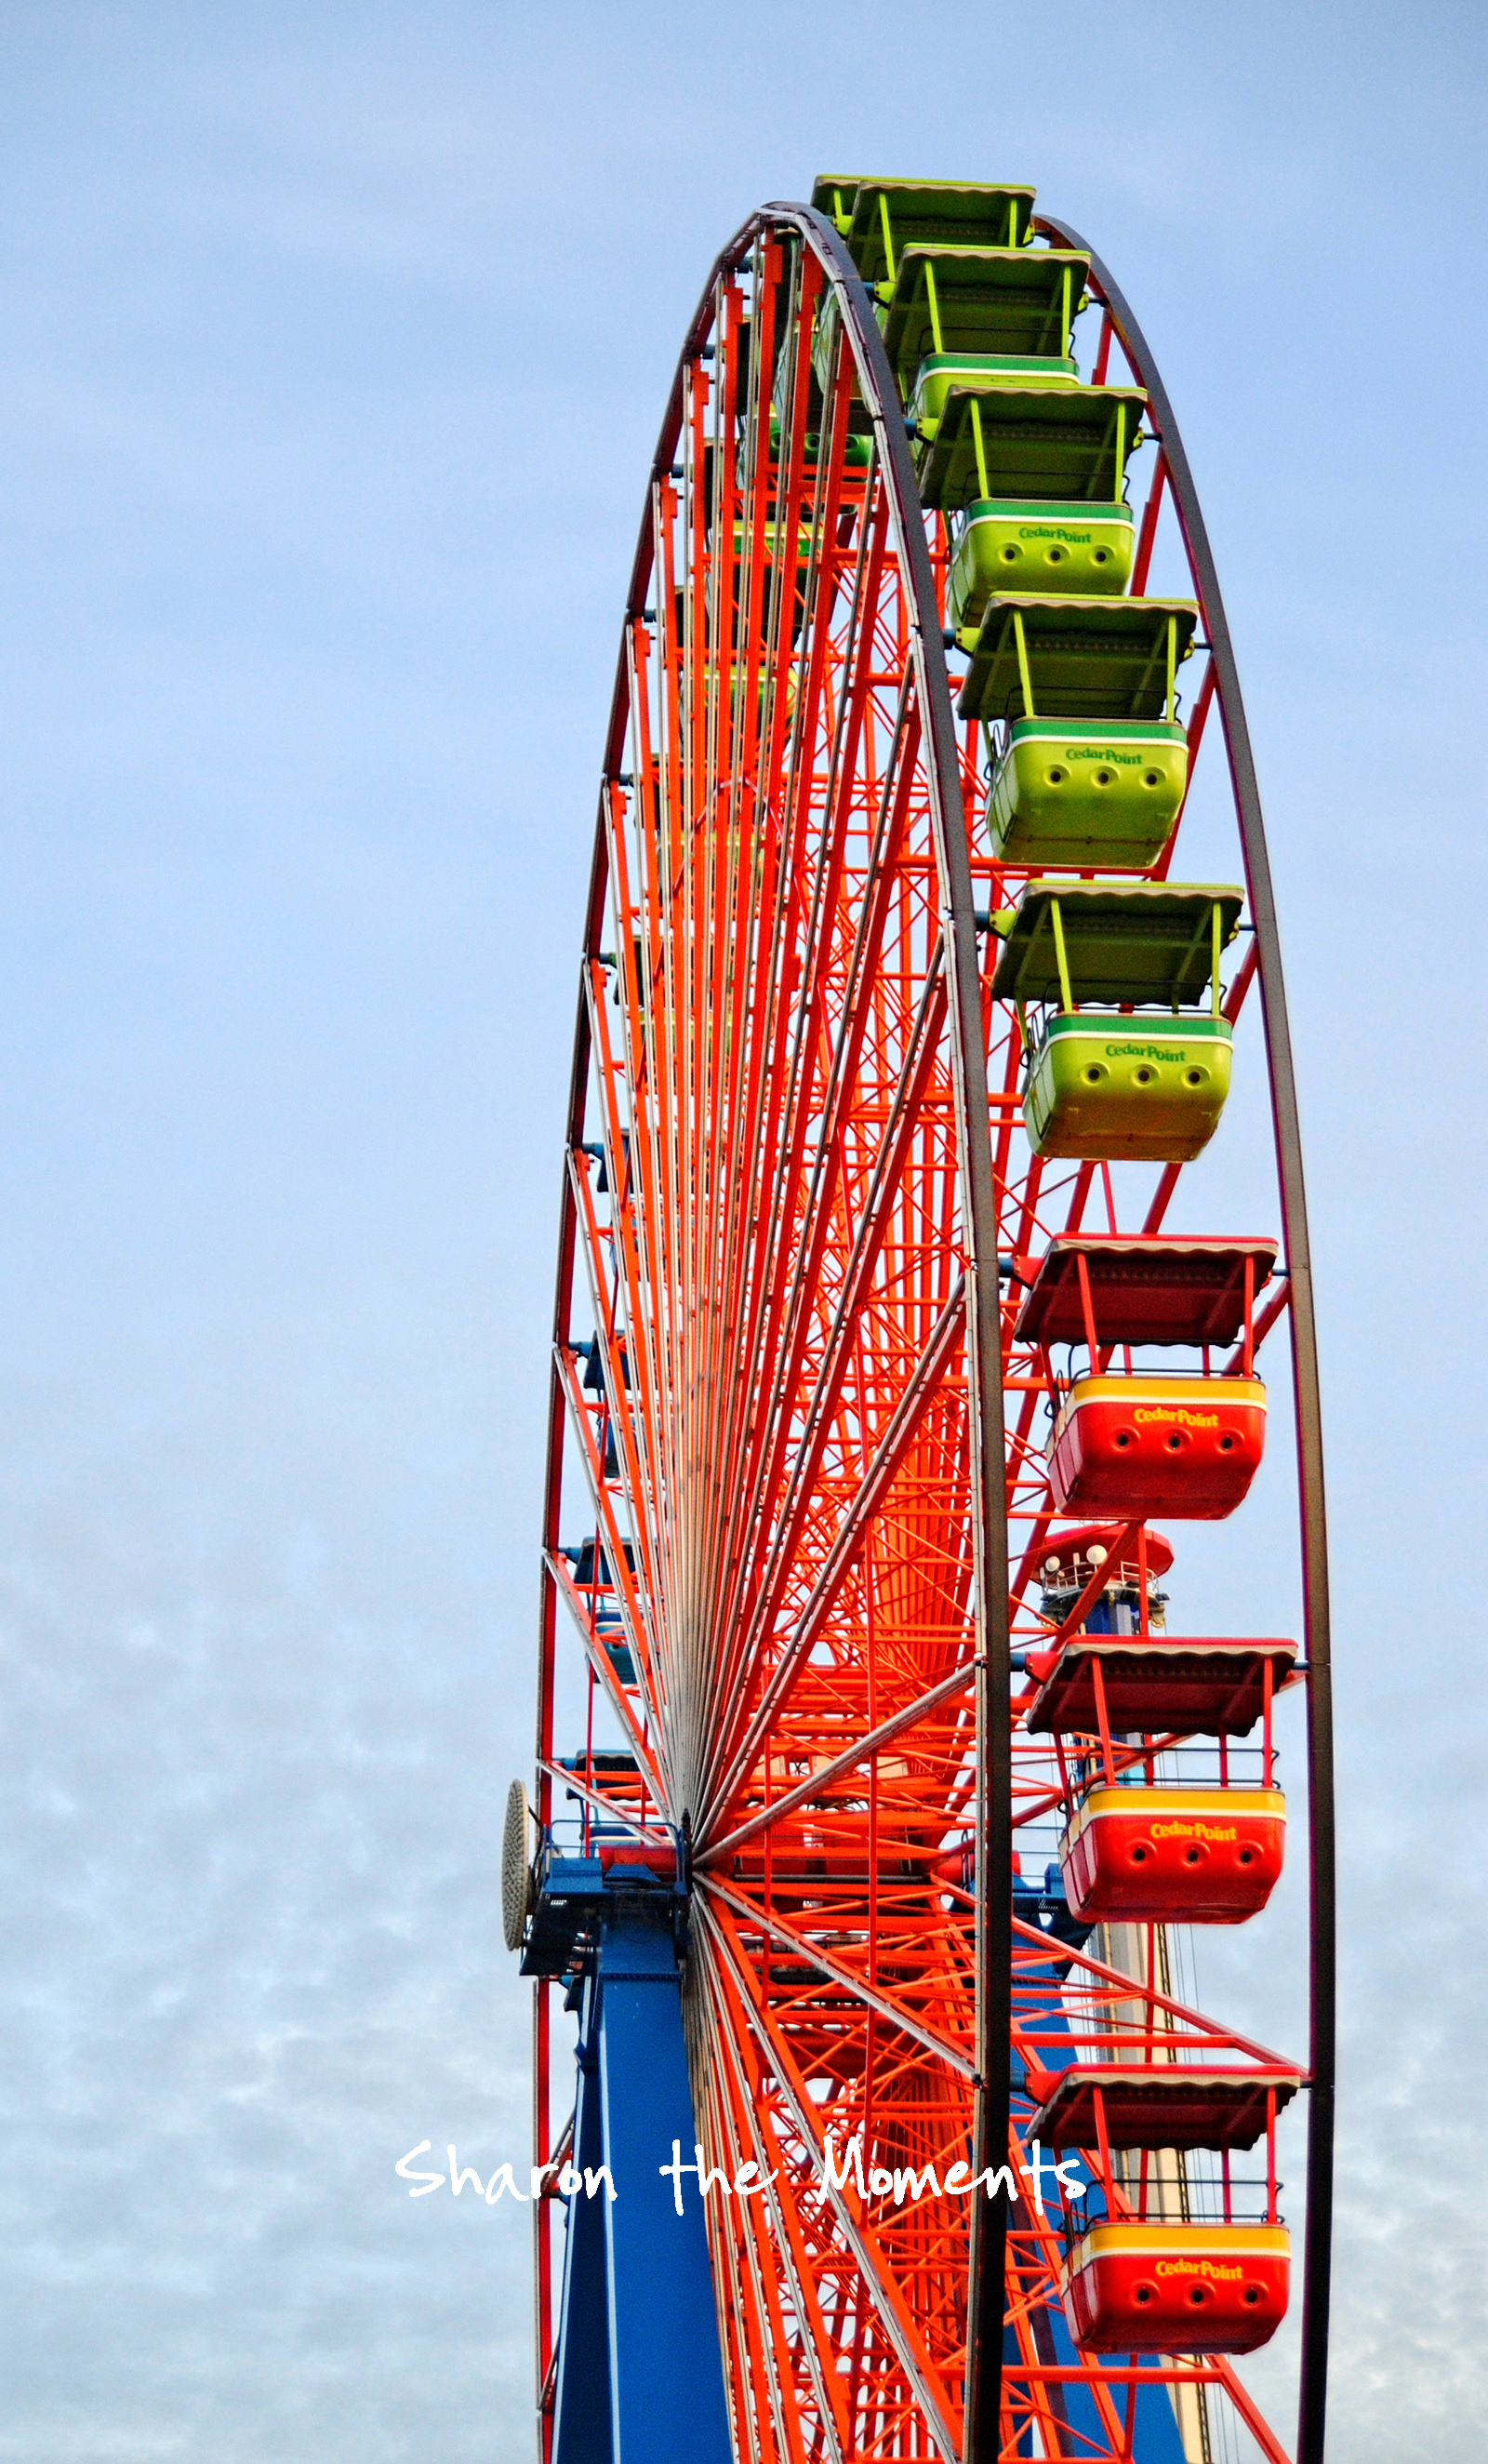 Cedar Point Sandusky Ohio is more than just for Bloggers Sharon the Moments blog